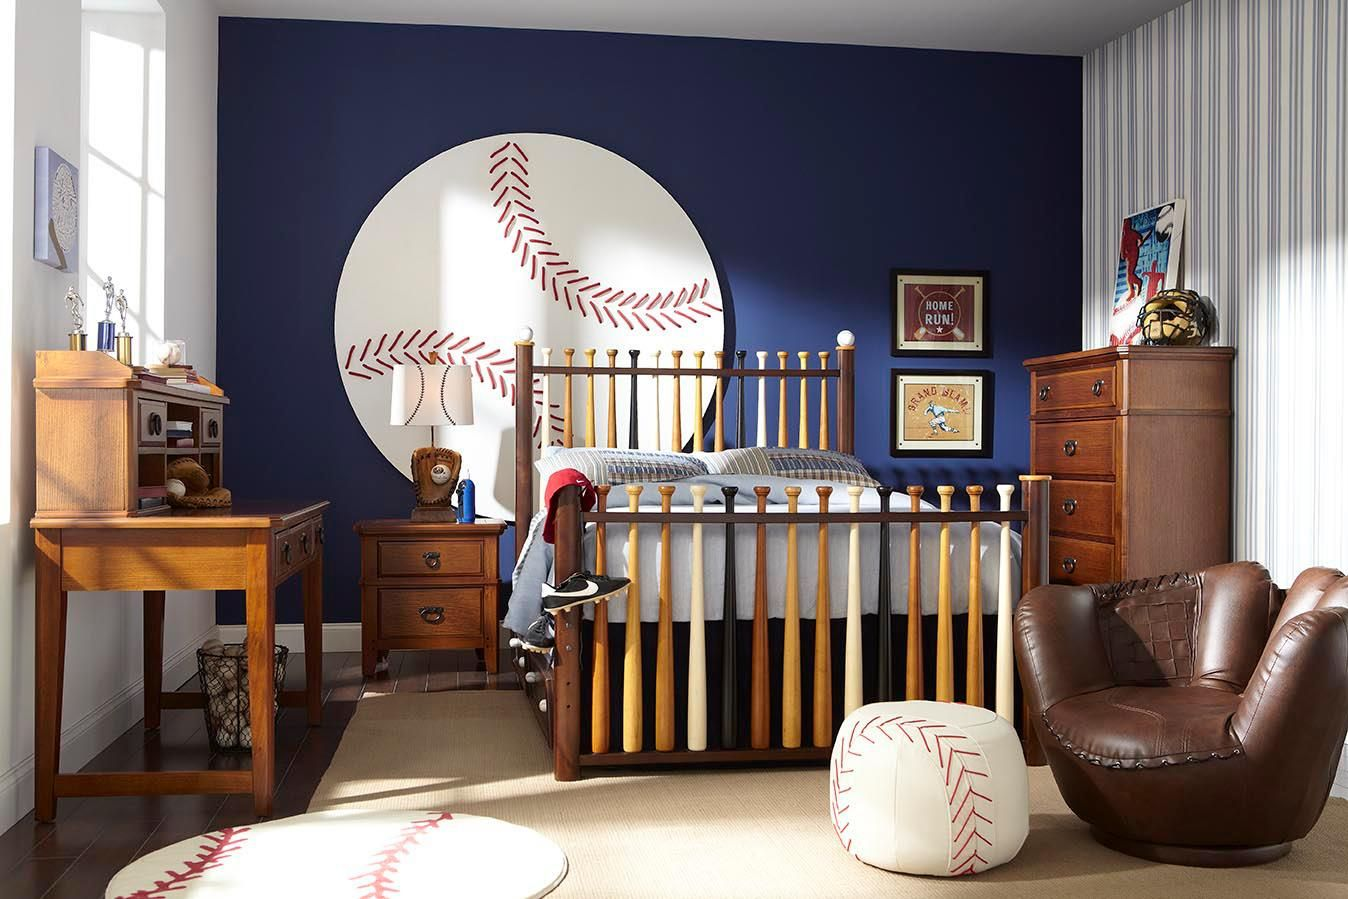 this baseball themed kid 39 s room is amazing decor